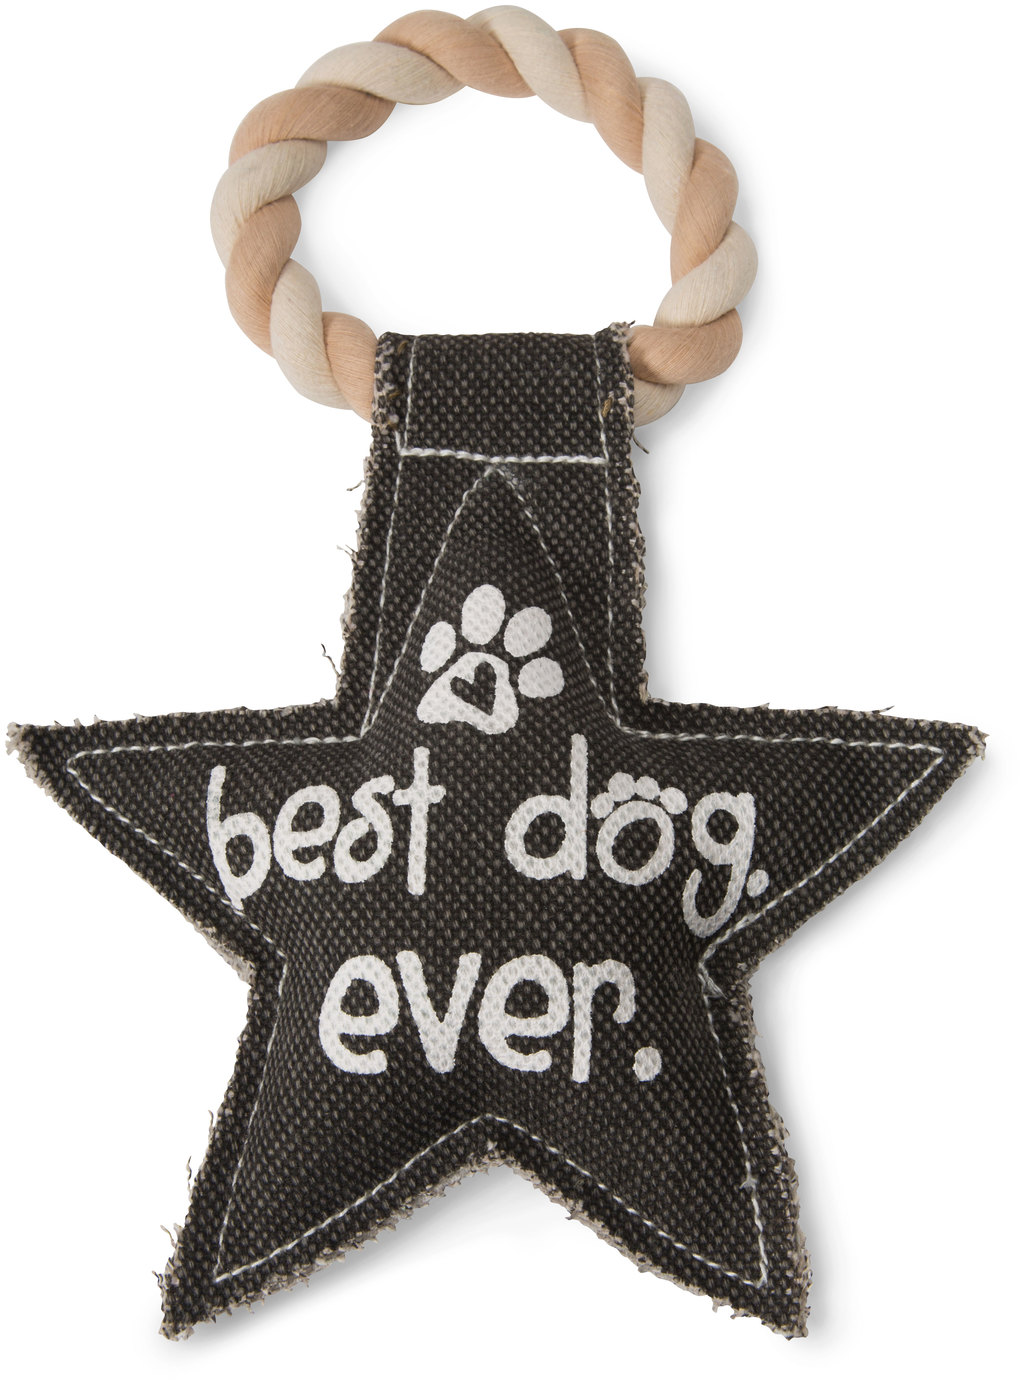 Best Dog Ever by Pavilion's Pets - Best Dog Ever Star Shaped Sturdy Canvas Tug of War Dog Toy